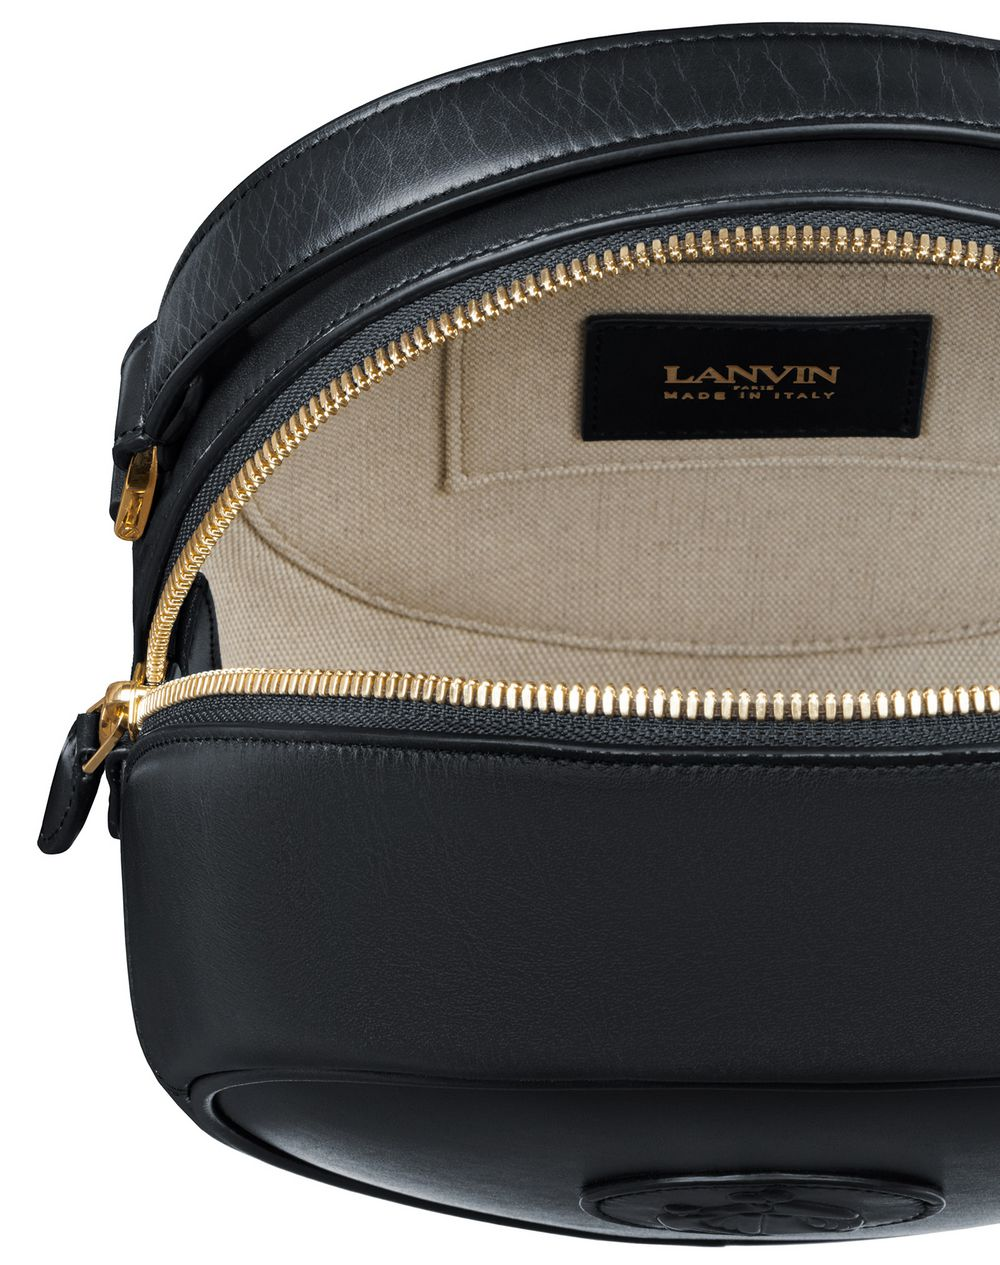 COOKIE BAG MM - Lanvin